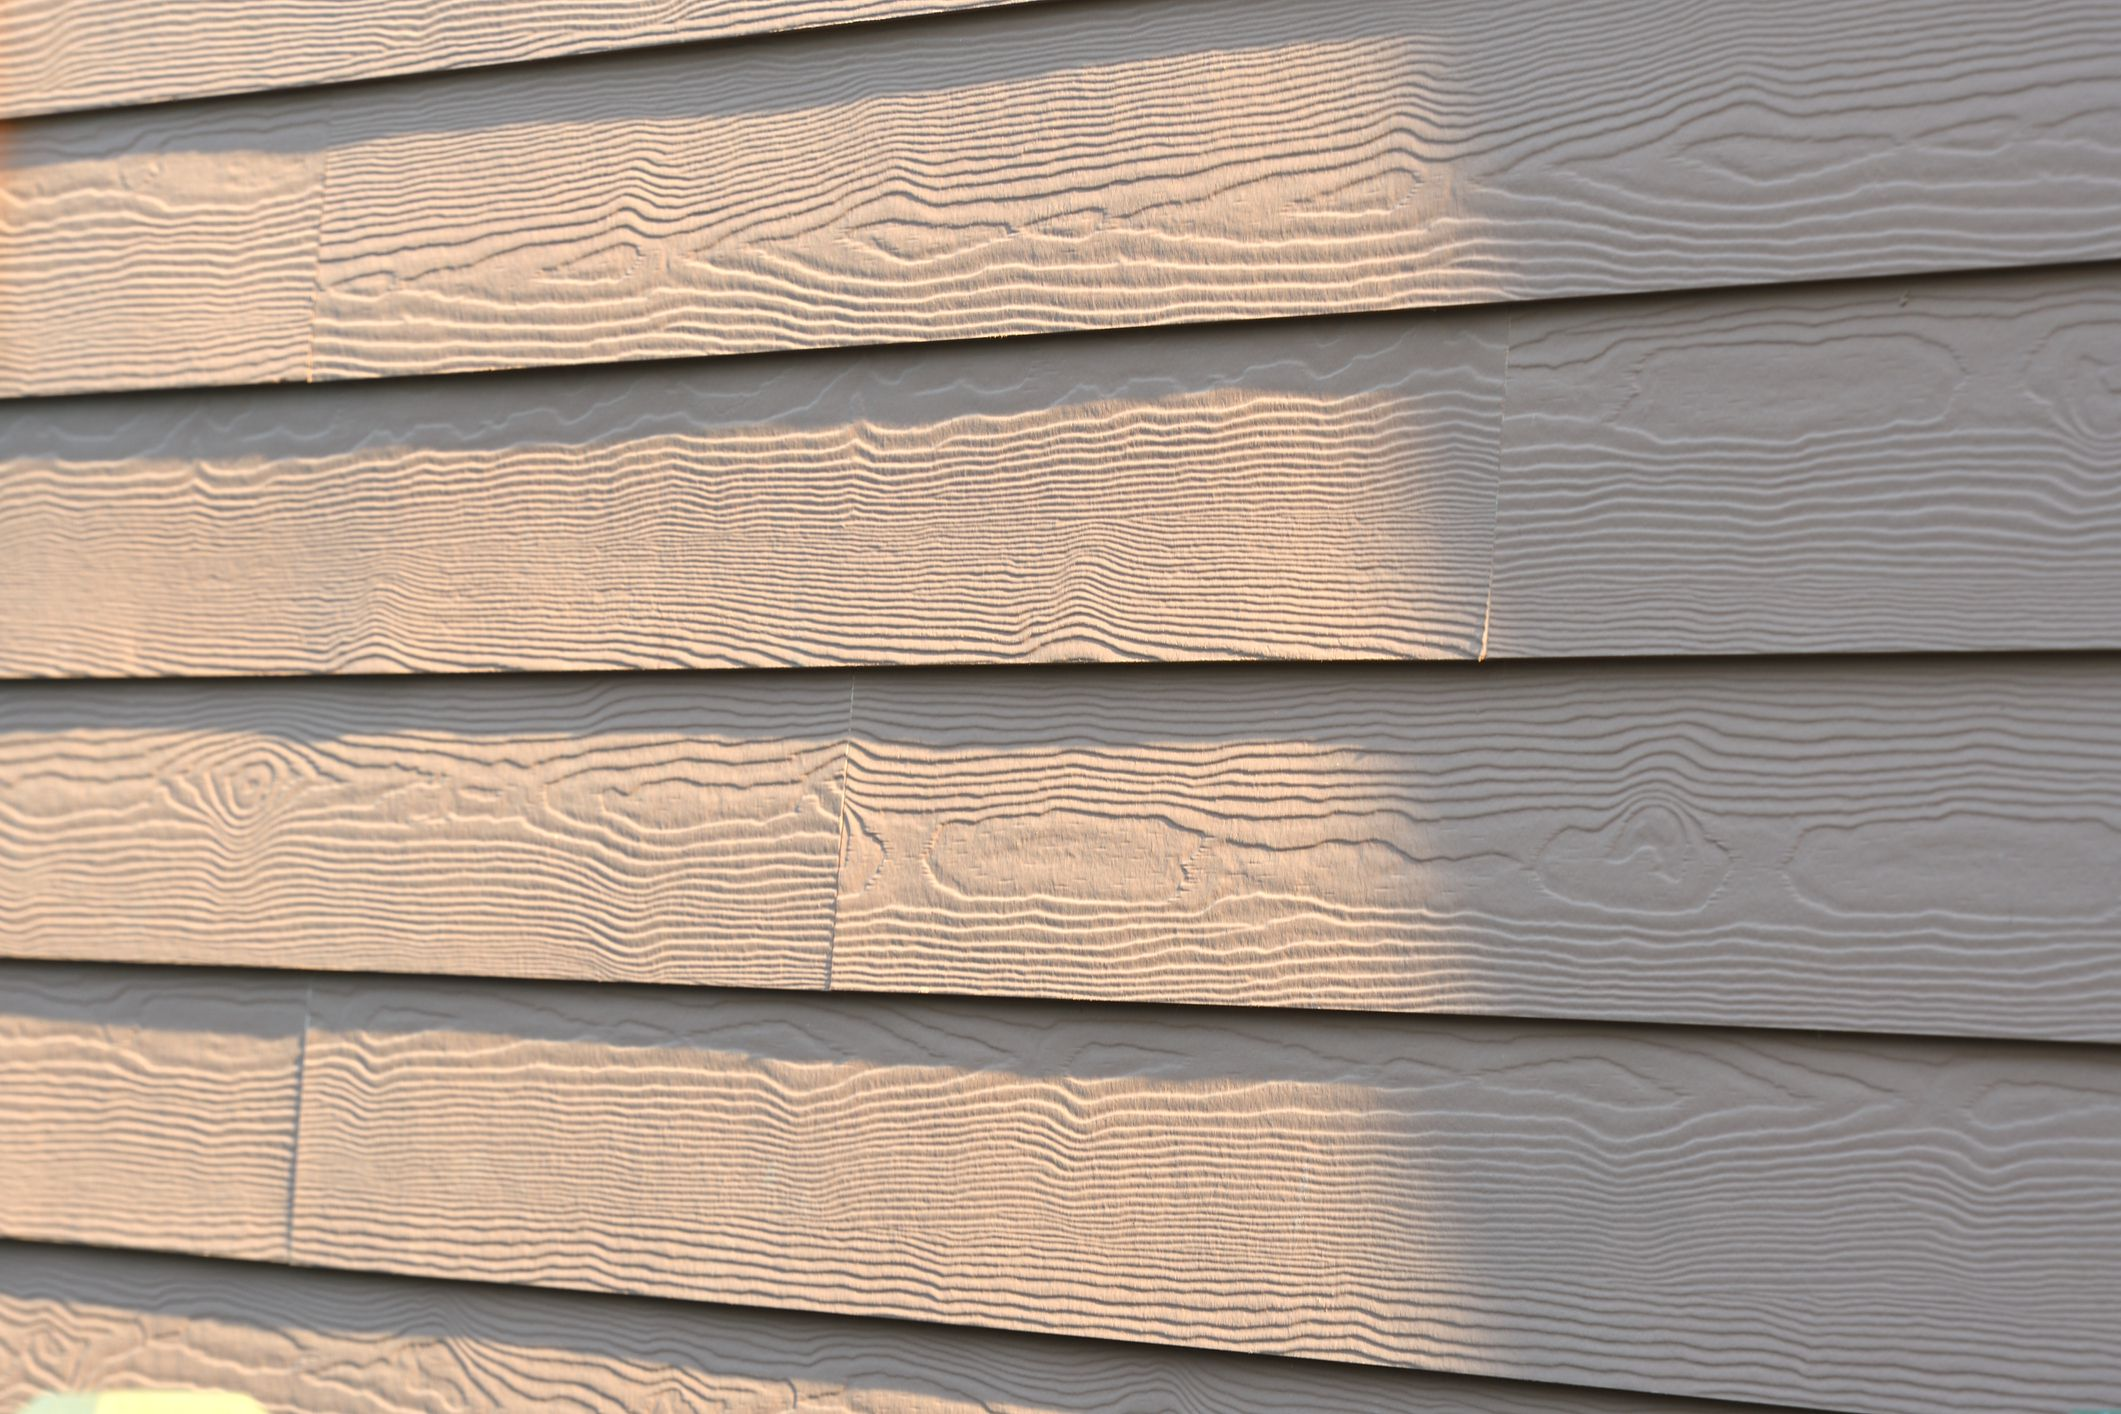 Harplank Siding Overview And Basics